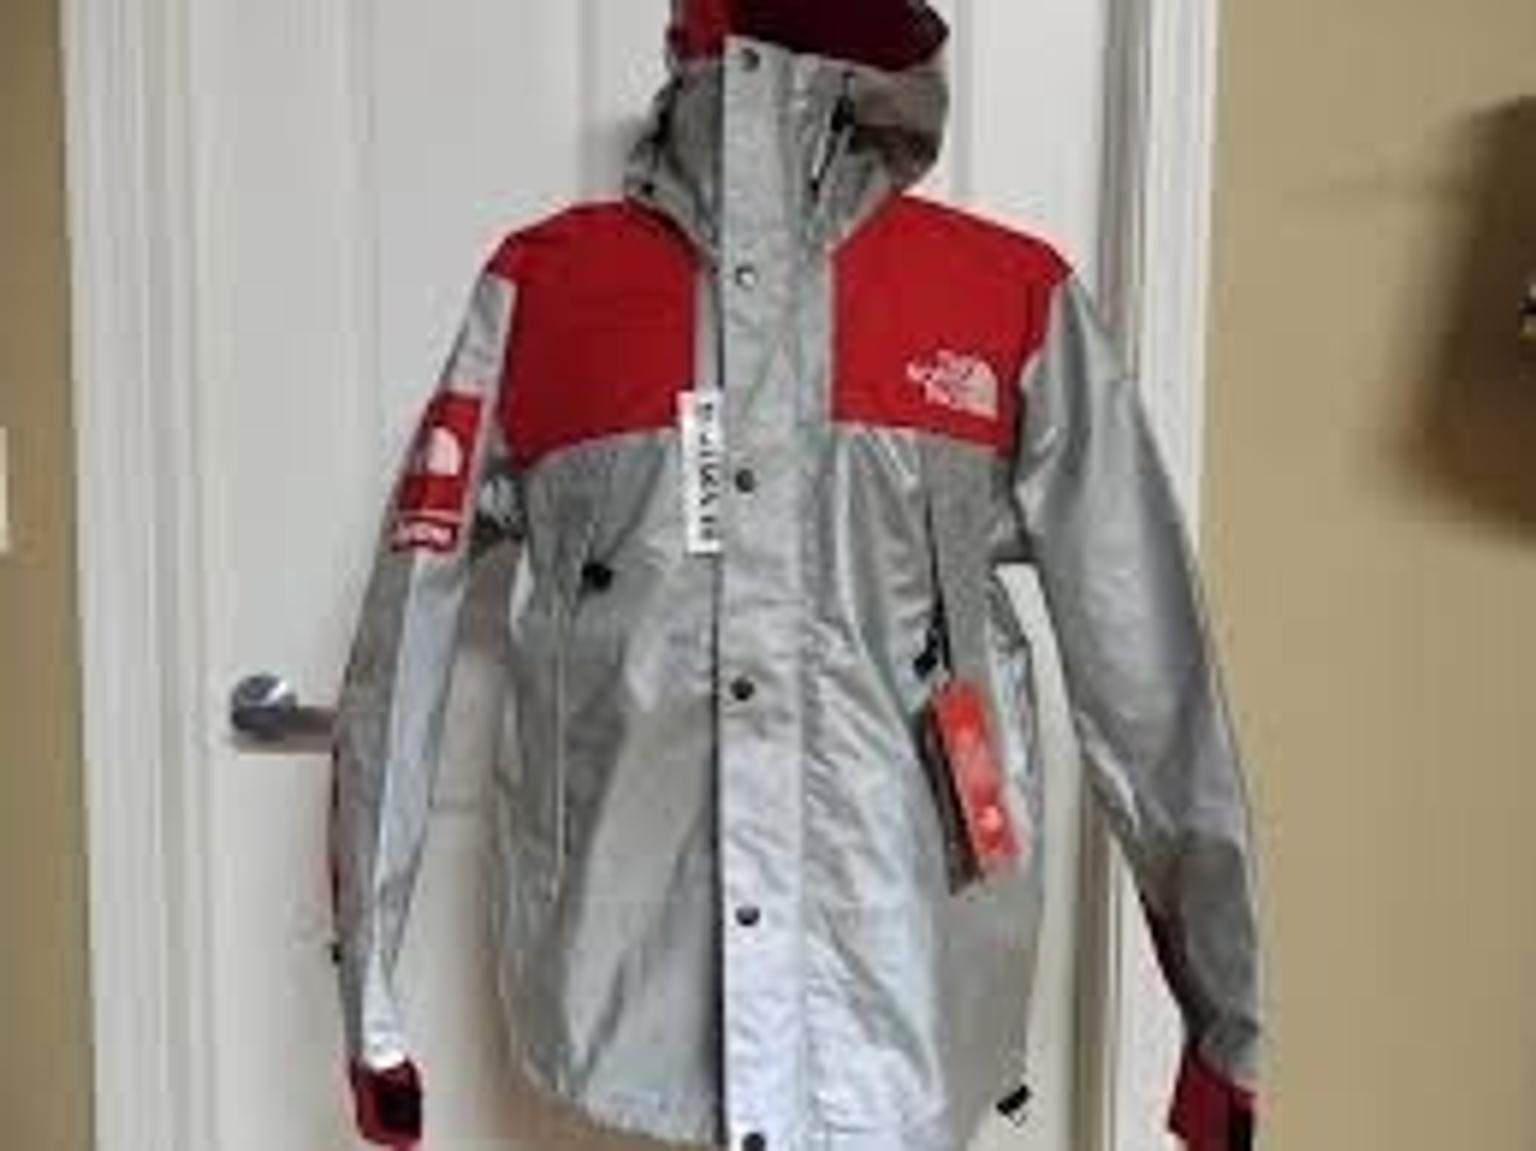 40d3ce9036d5 Supreme x the north face 3m jacket in SW11 London for £180.00 for sale -  Shpock